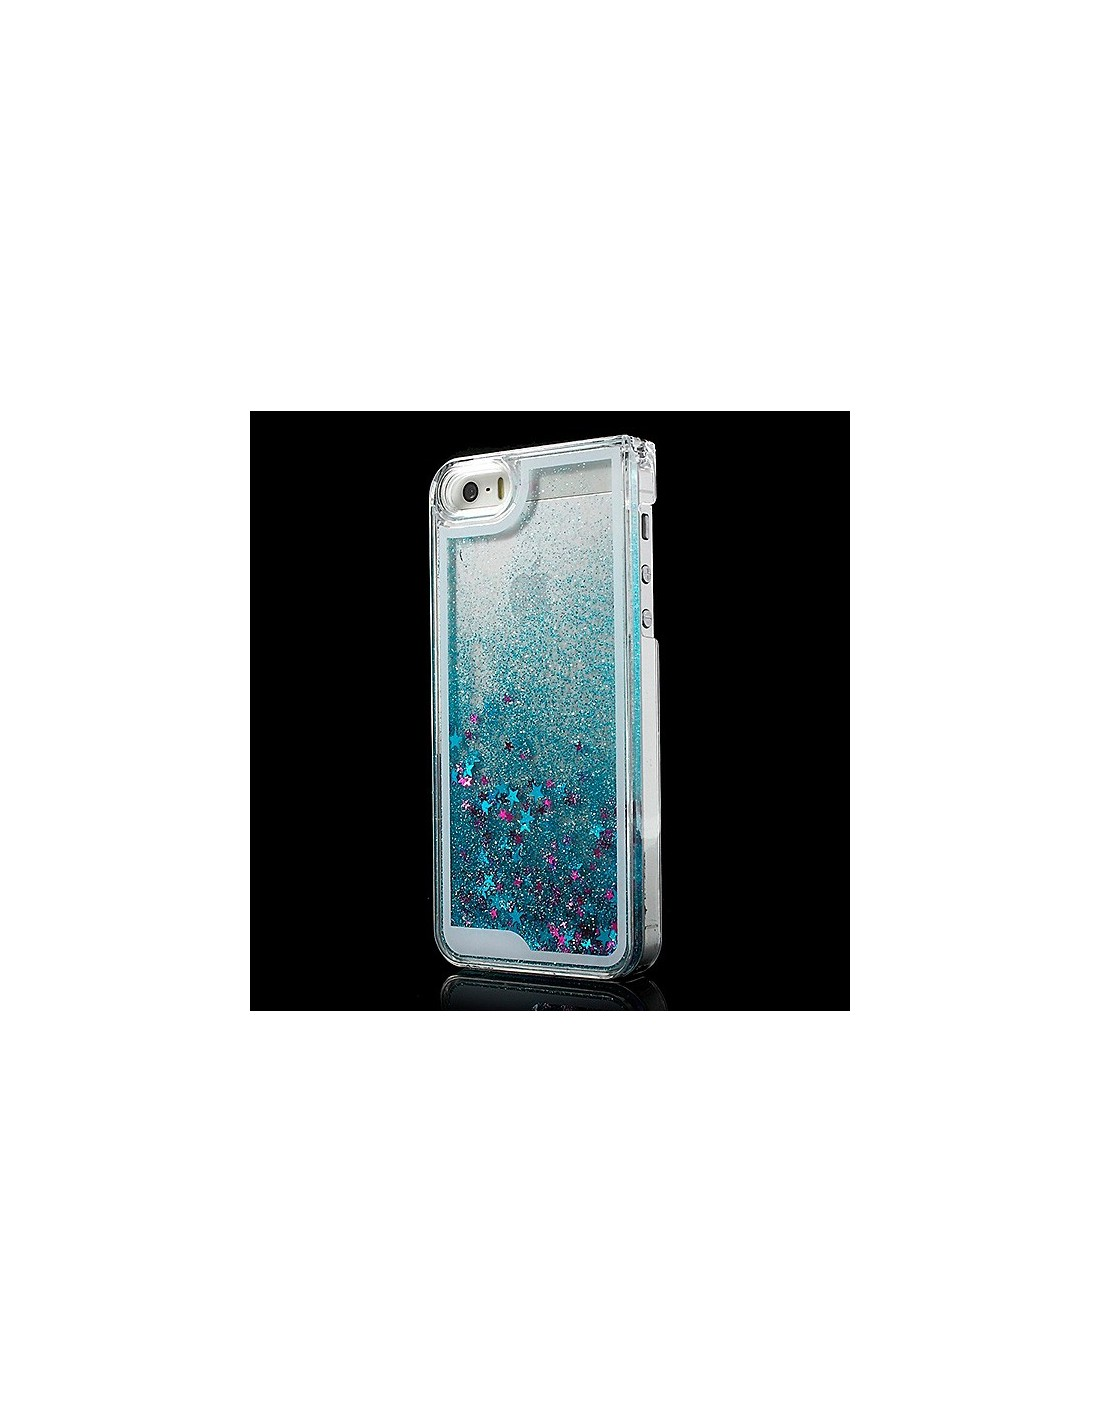 coque liquide avec paillettes et etoiles bleu pour iphone 5 5s. Black Bedroom Furniture Sets. Home Design Ideas